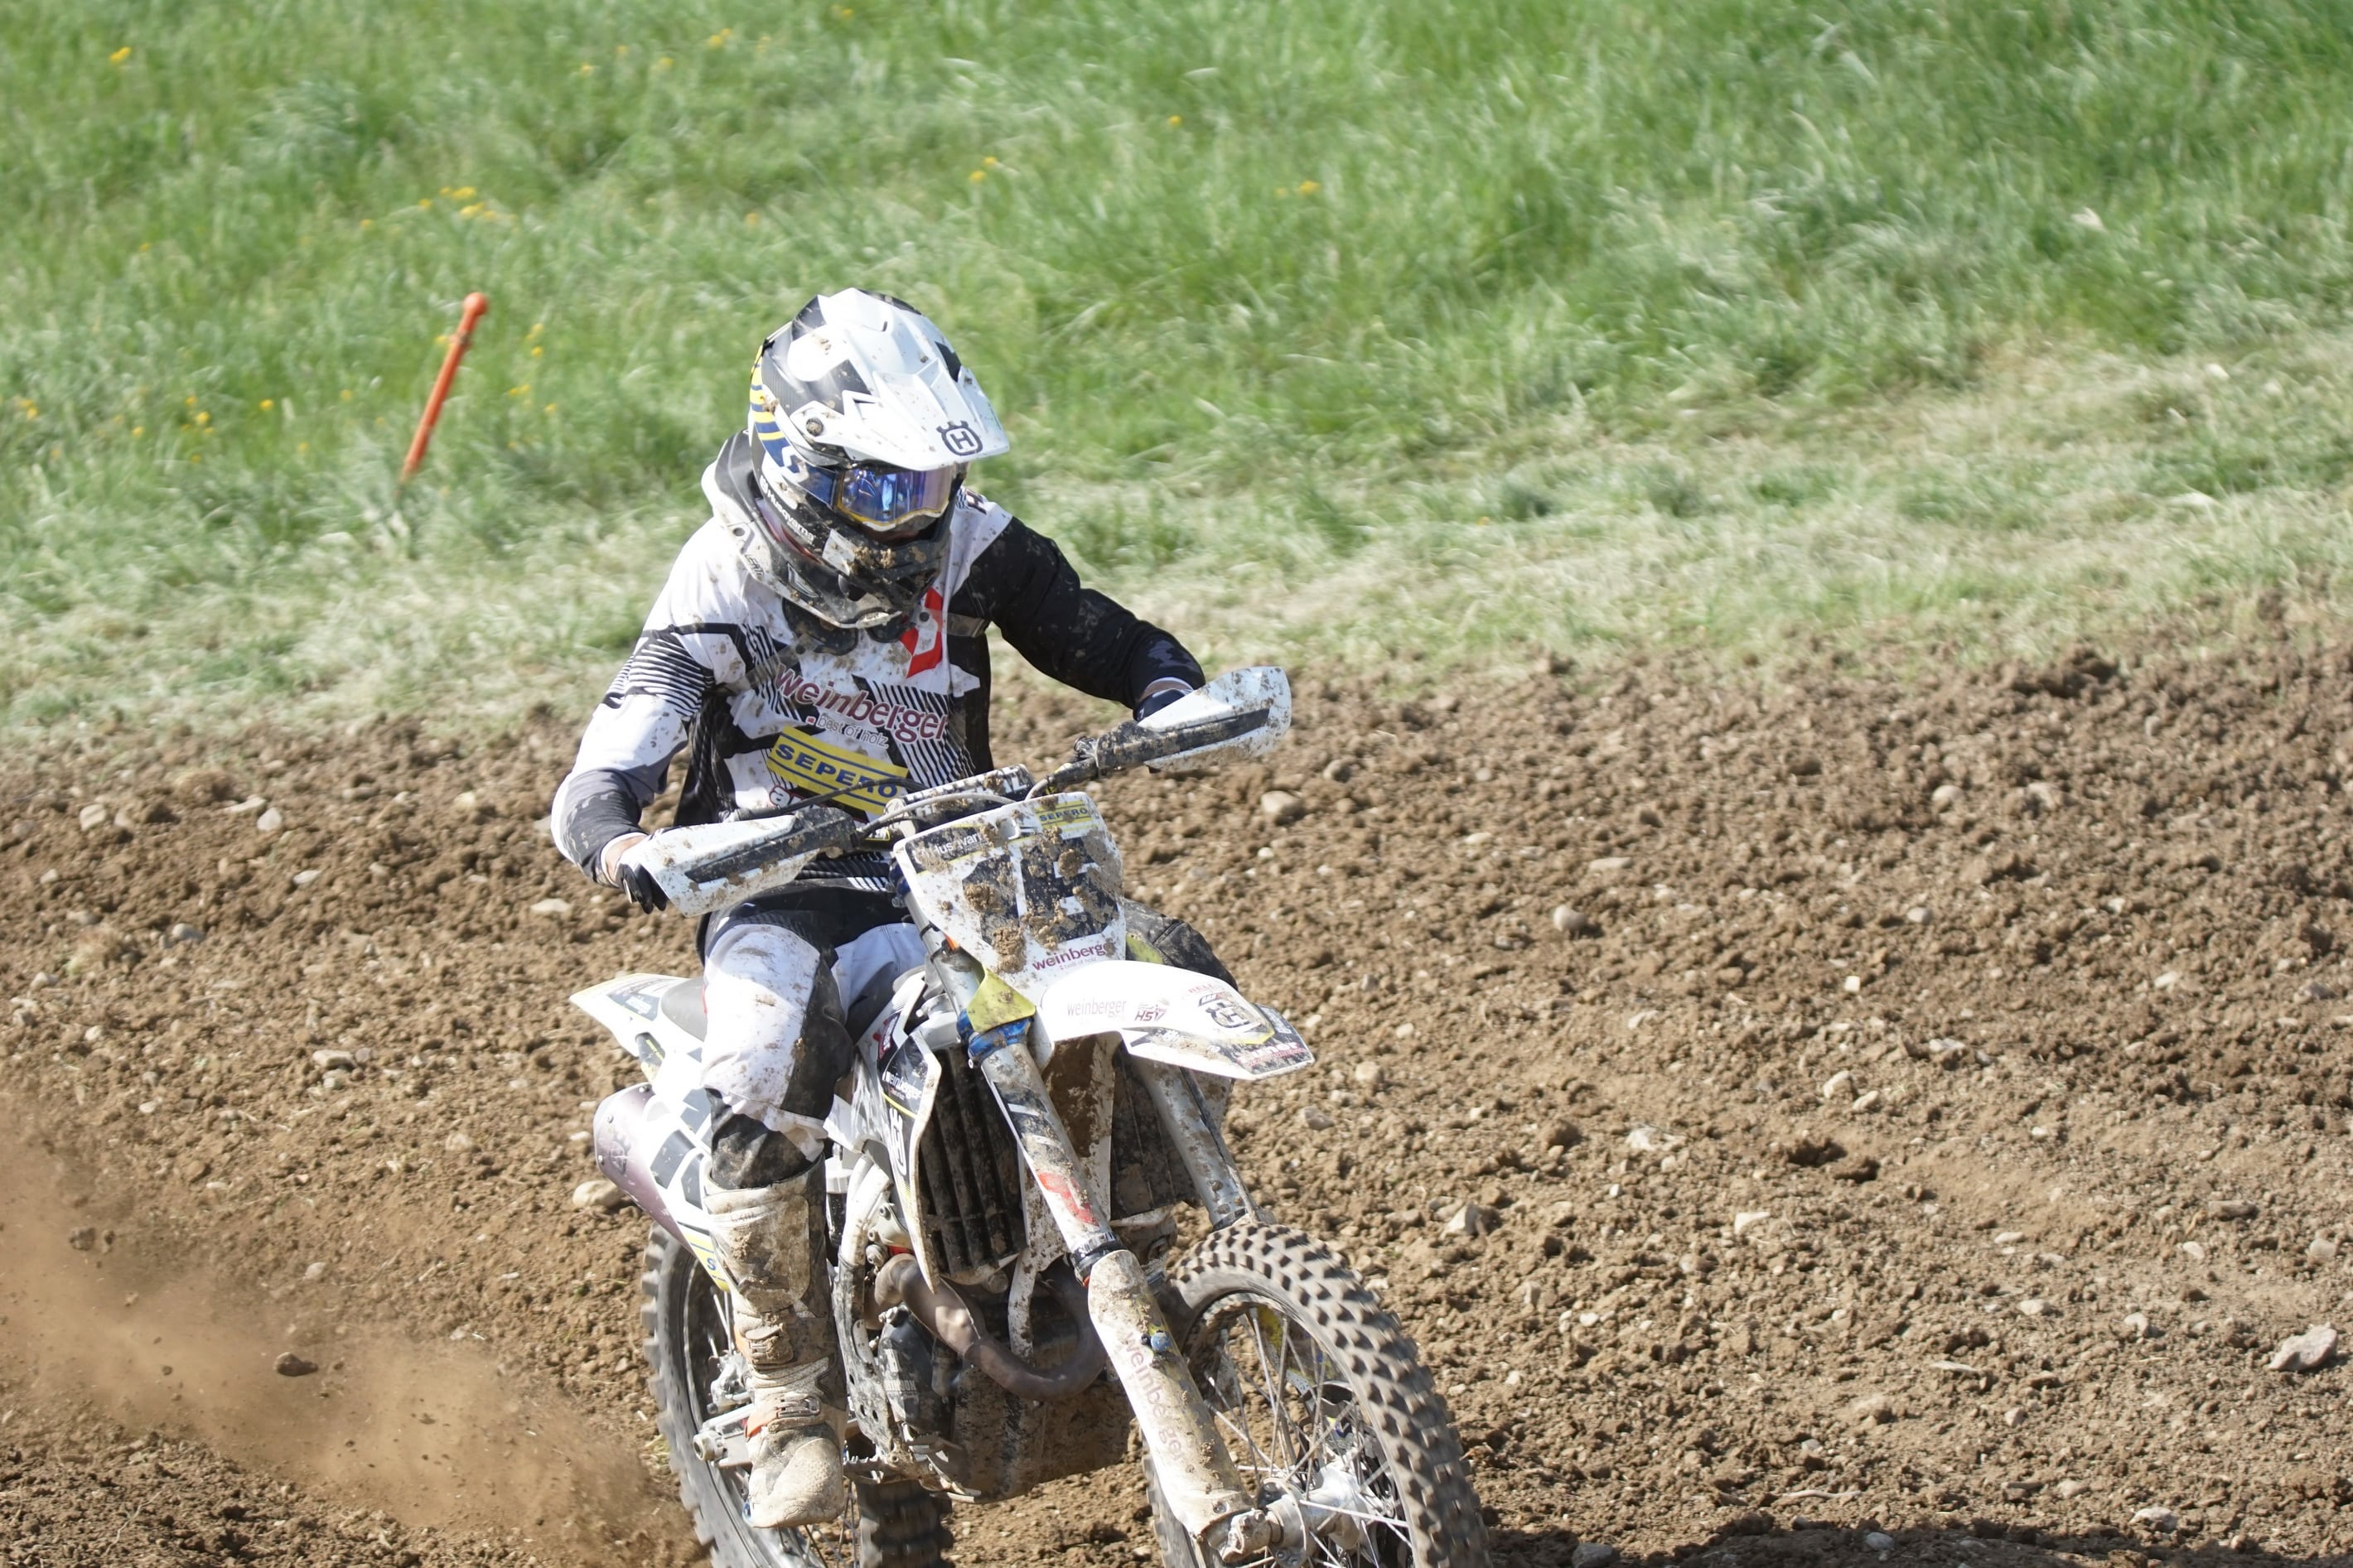 DSC 840_Moto Cross Sittendorf Teil1 am 29.04.2018